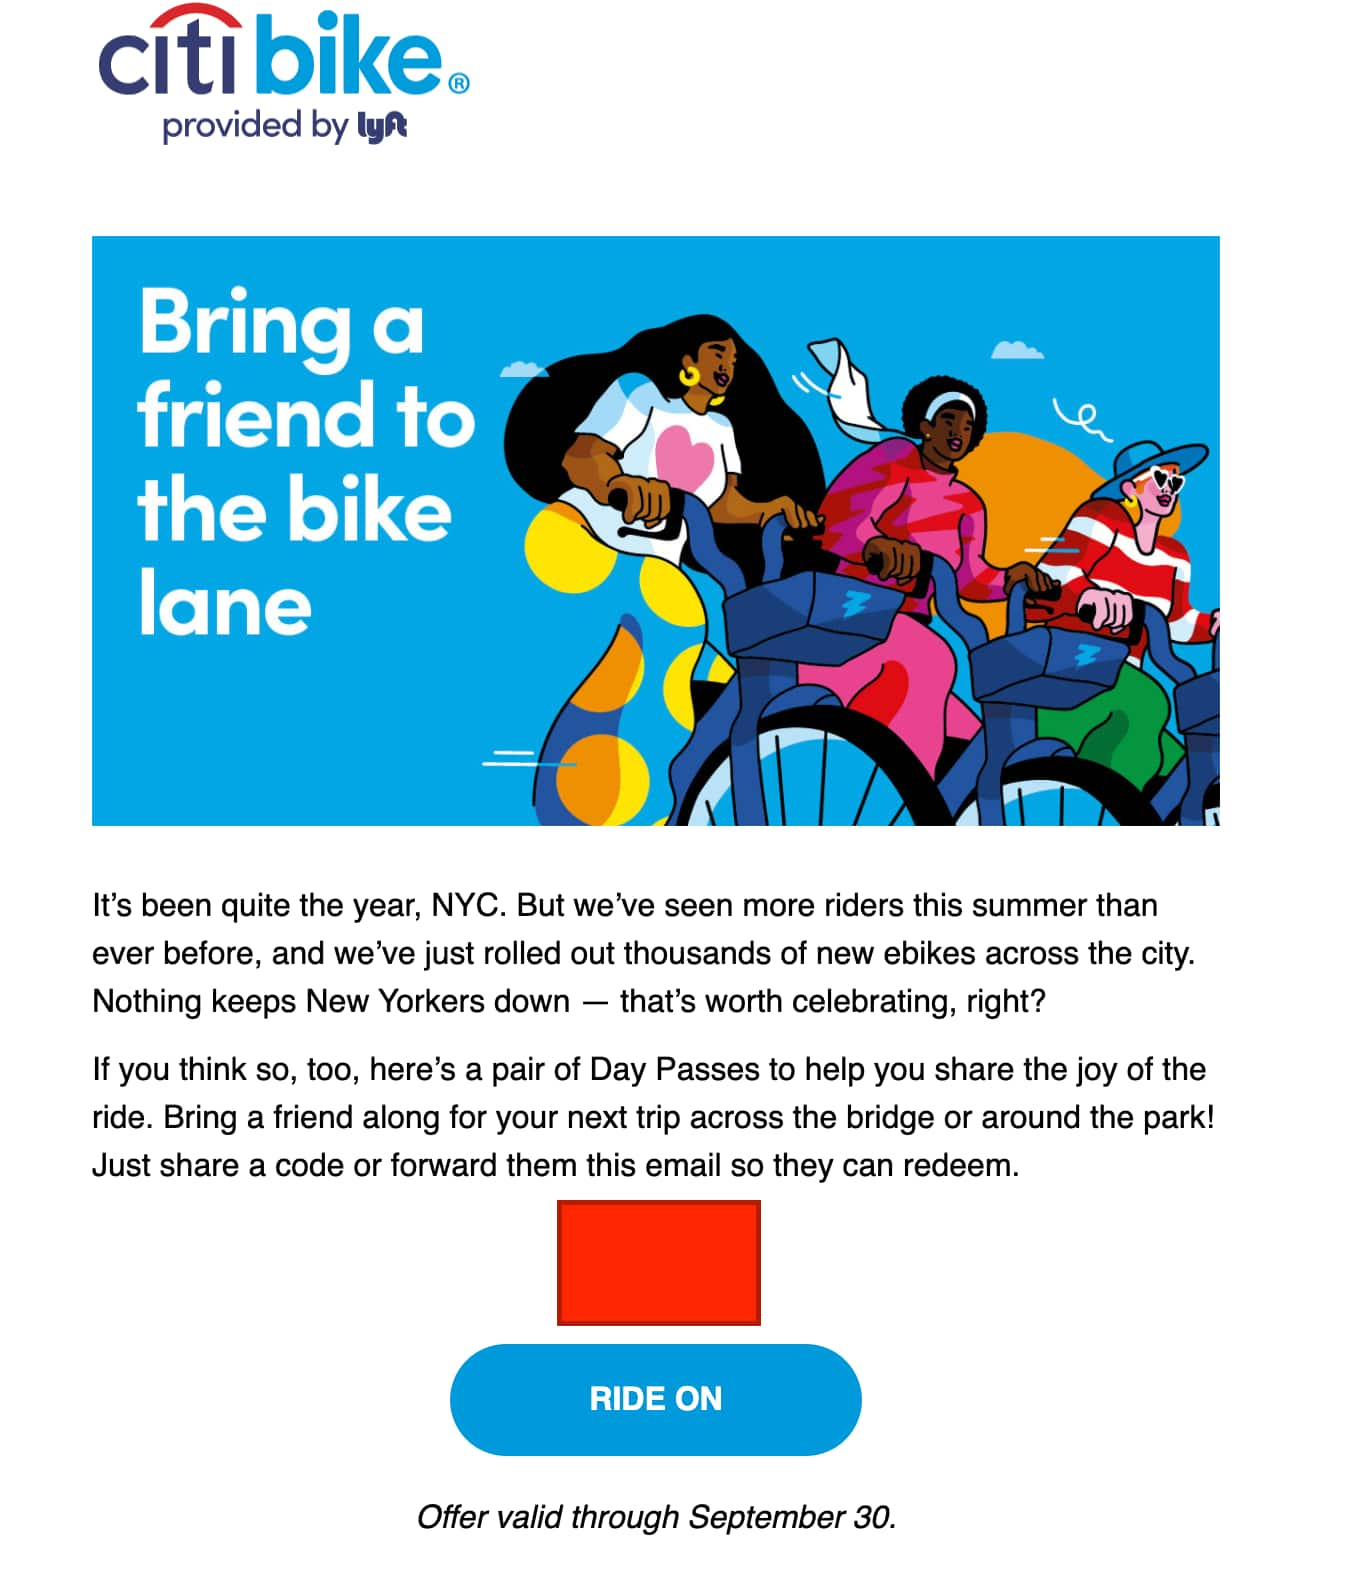 2 Free Citi Bike Day Passes (NYC) - Ends Sept 30